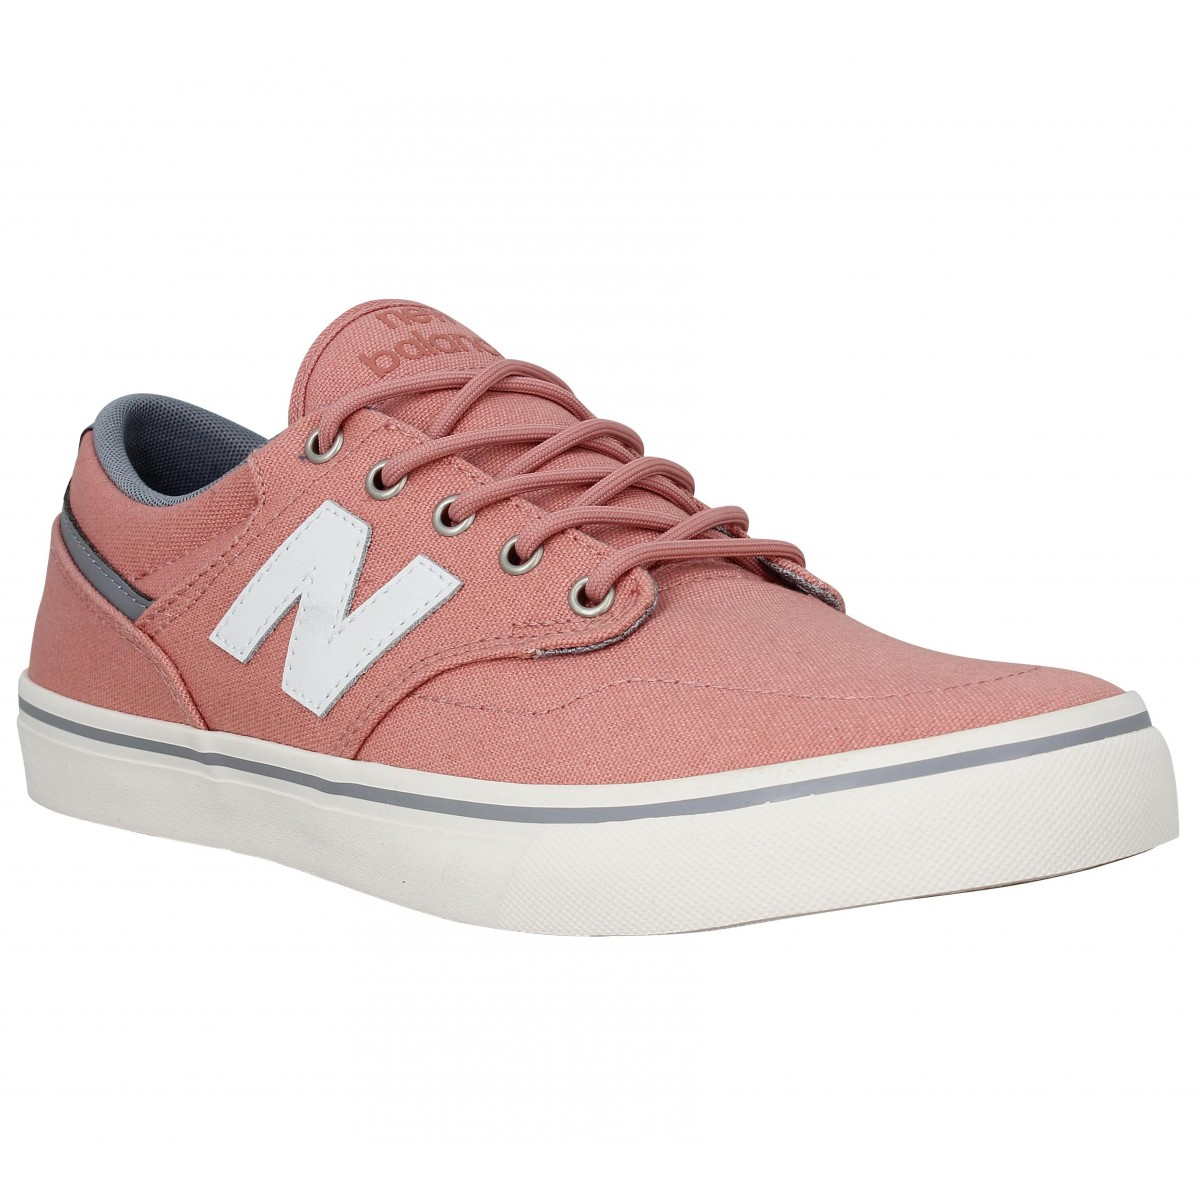 Baskets NEW BALANCE 331 toile Homme Rose